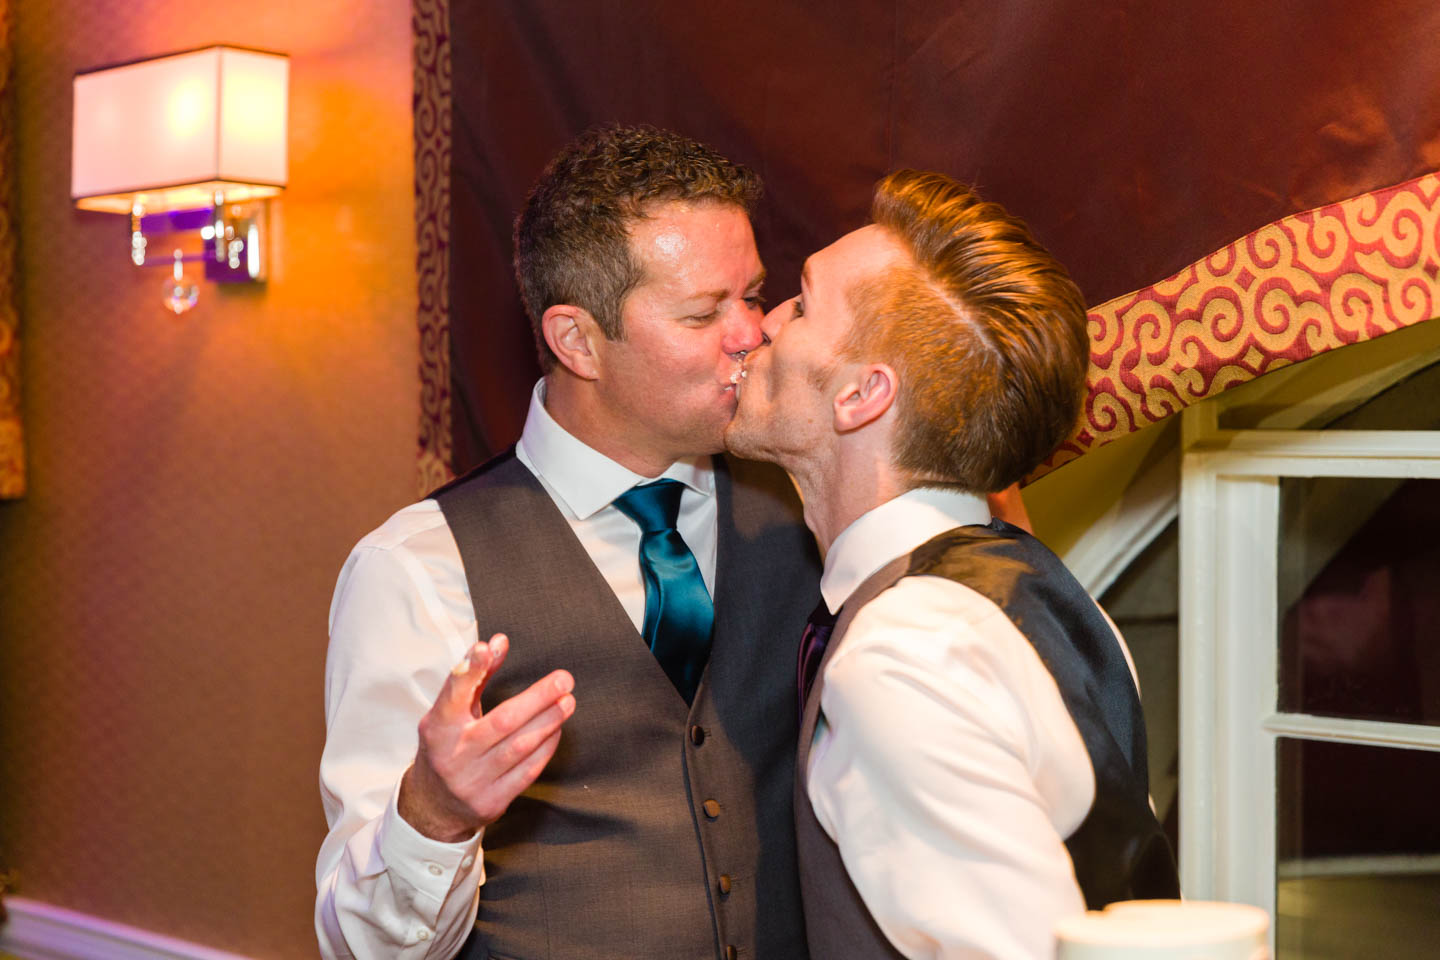 Grooms kiss after cutting the wedding cake